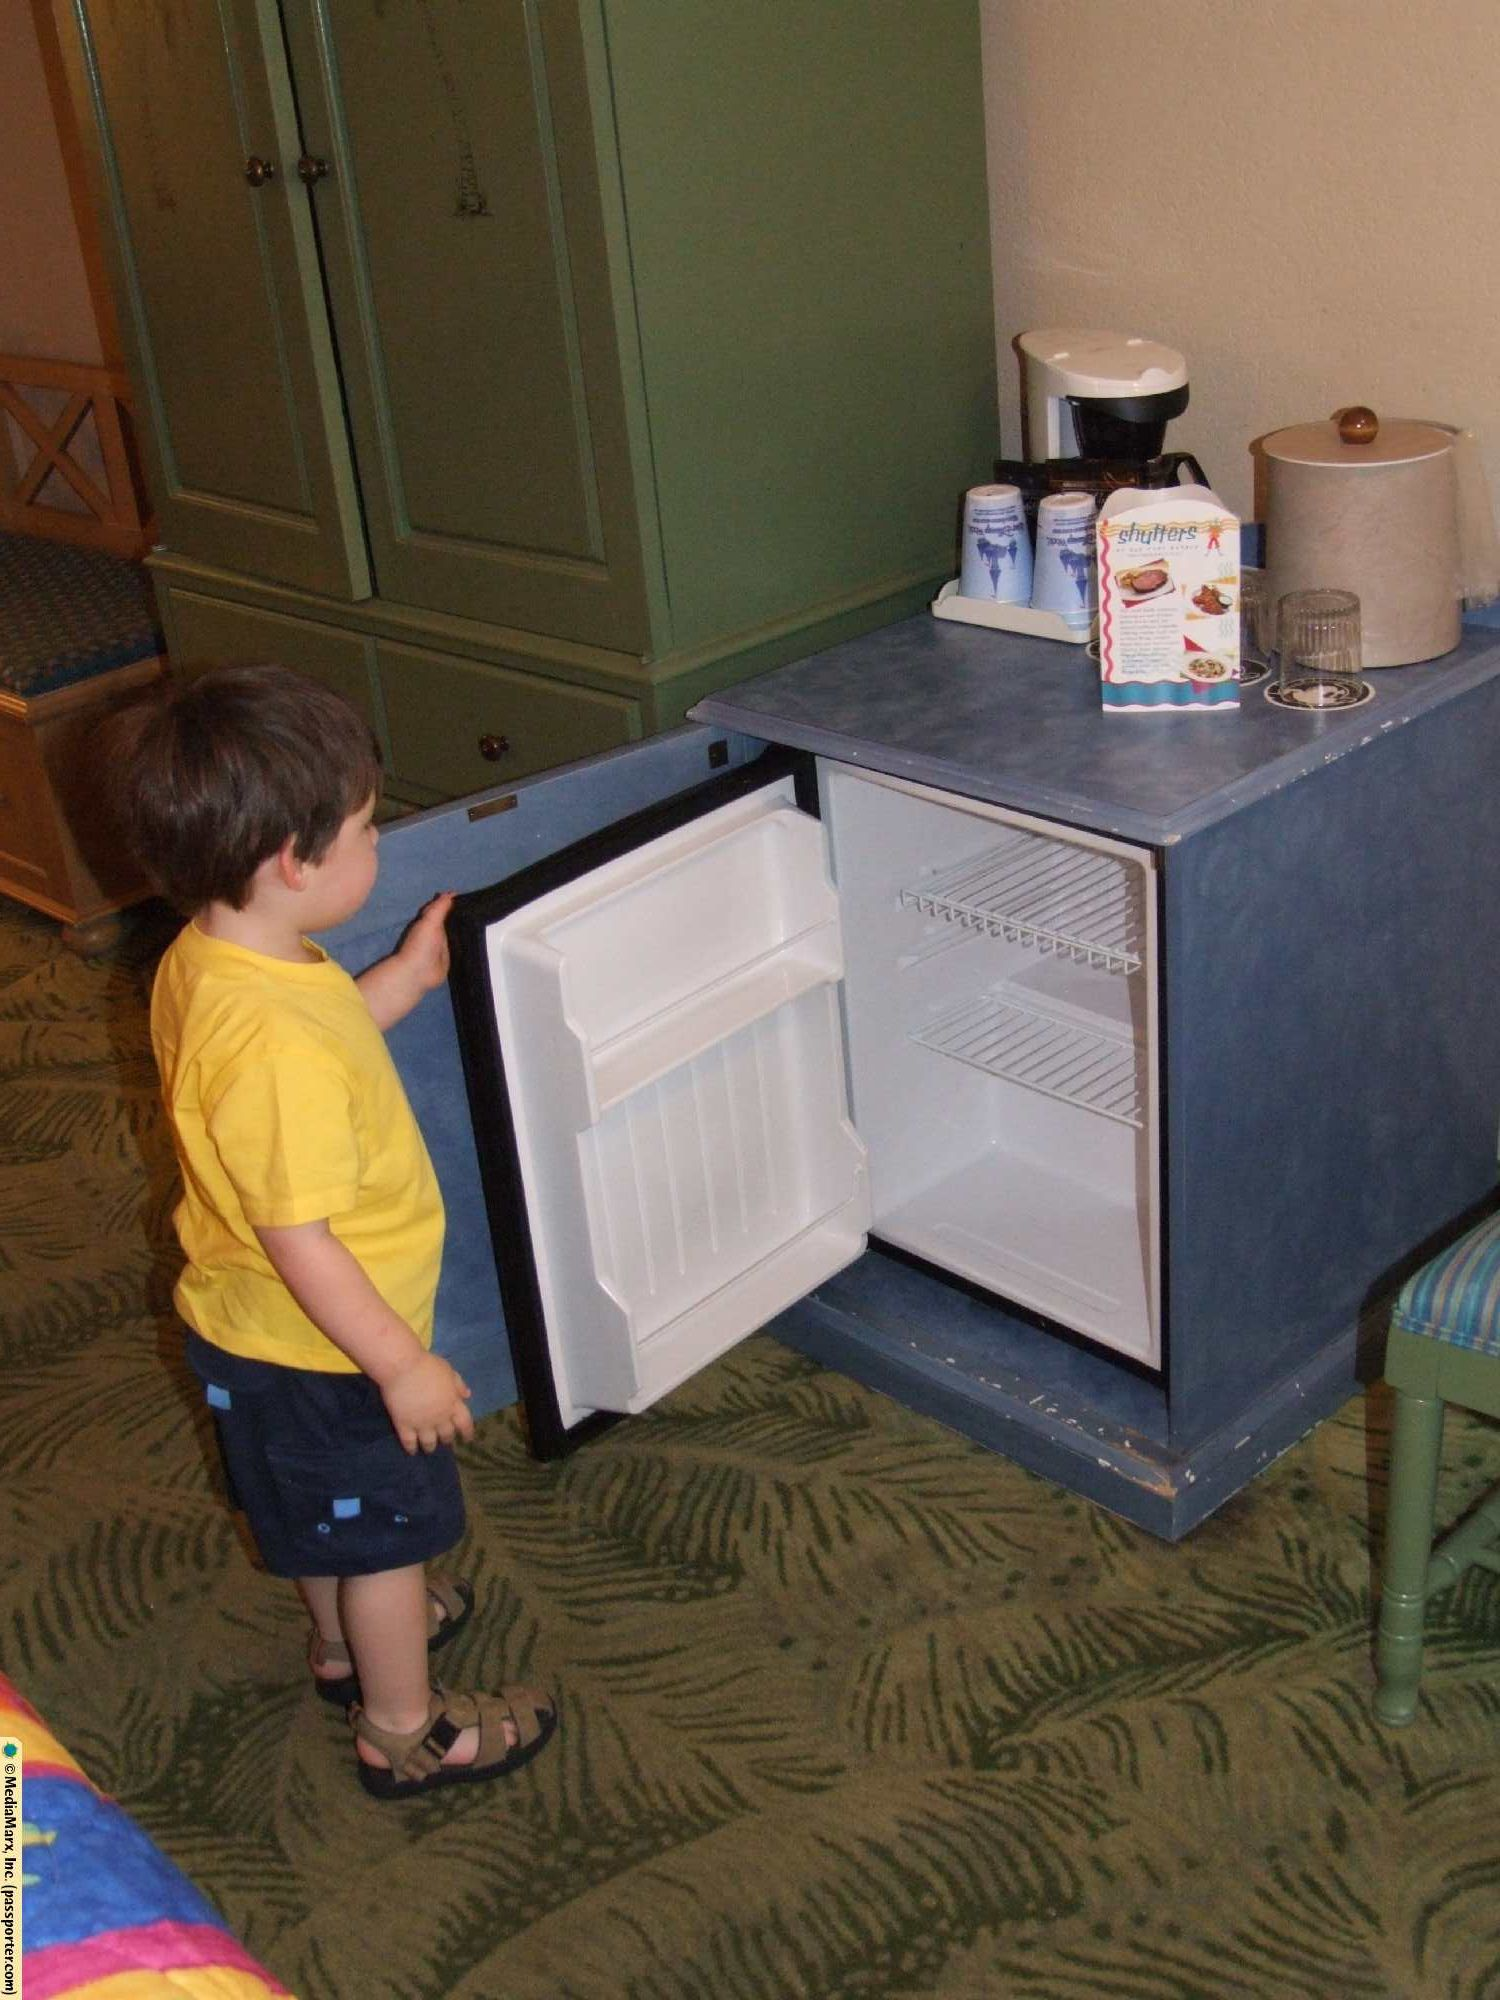 Caribbean Beach Resort Guest Room - Refrigerator